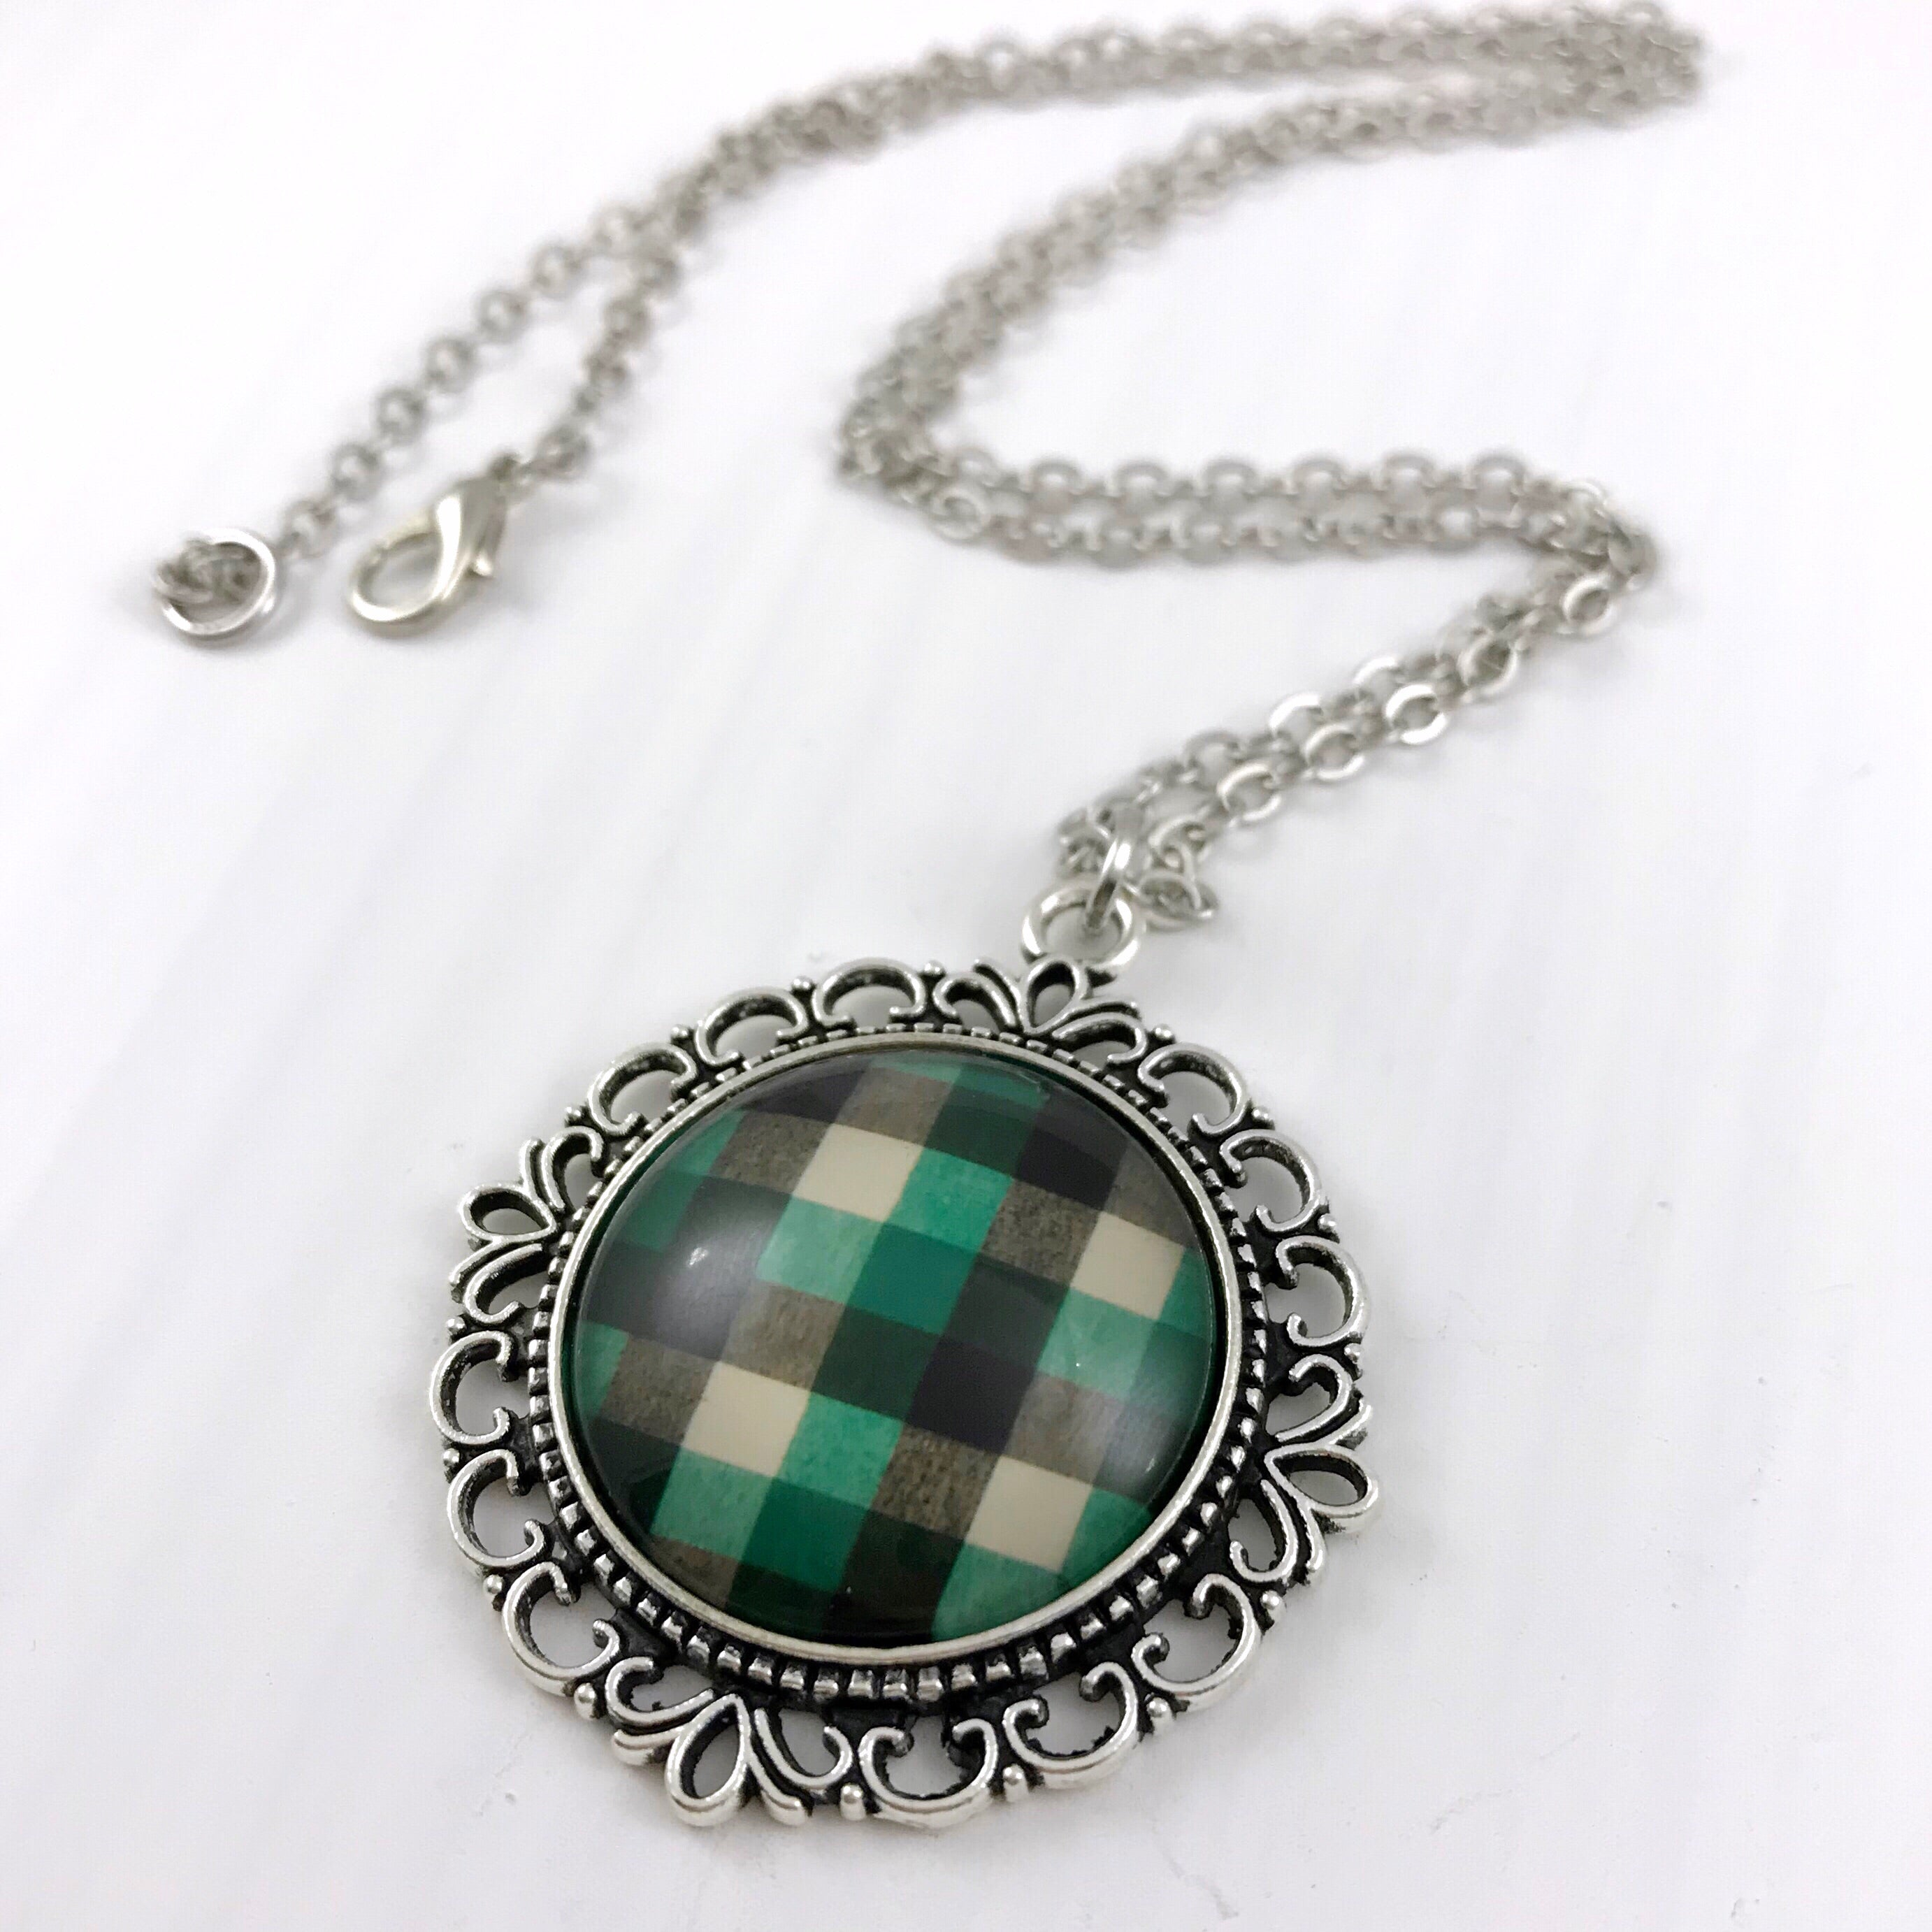 Green, White and Black Plaid Necklace Ornate